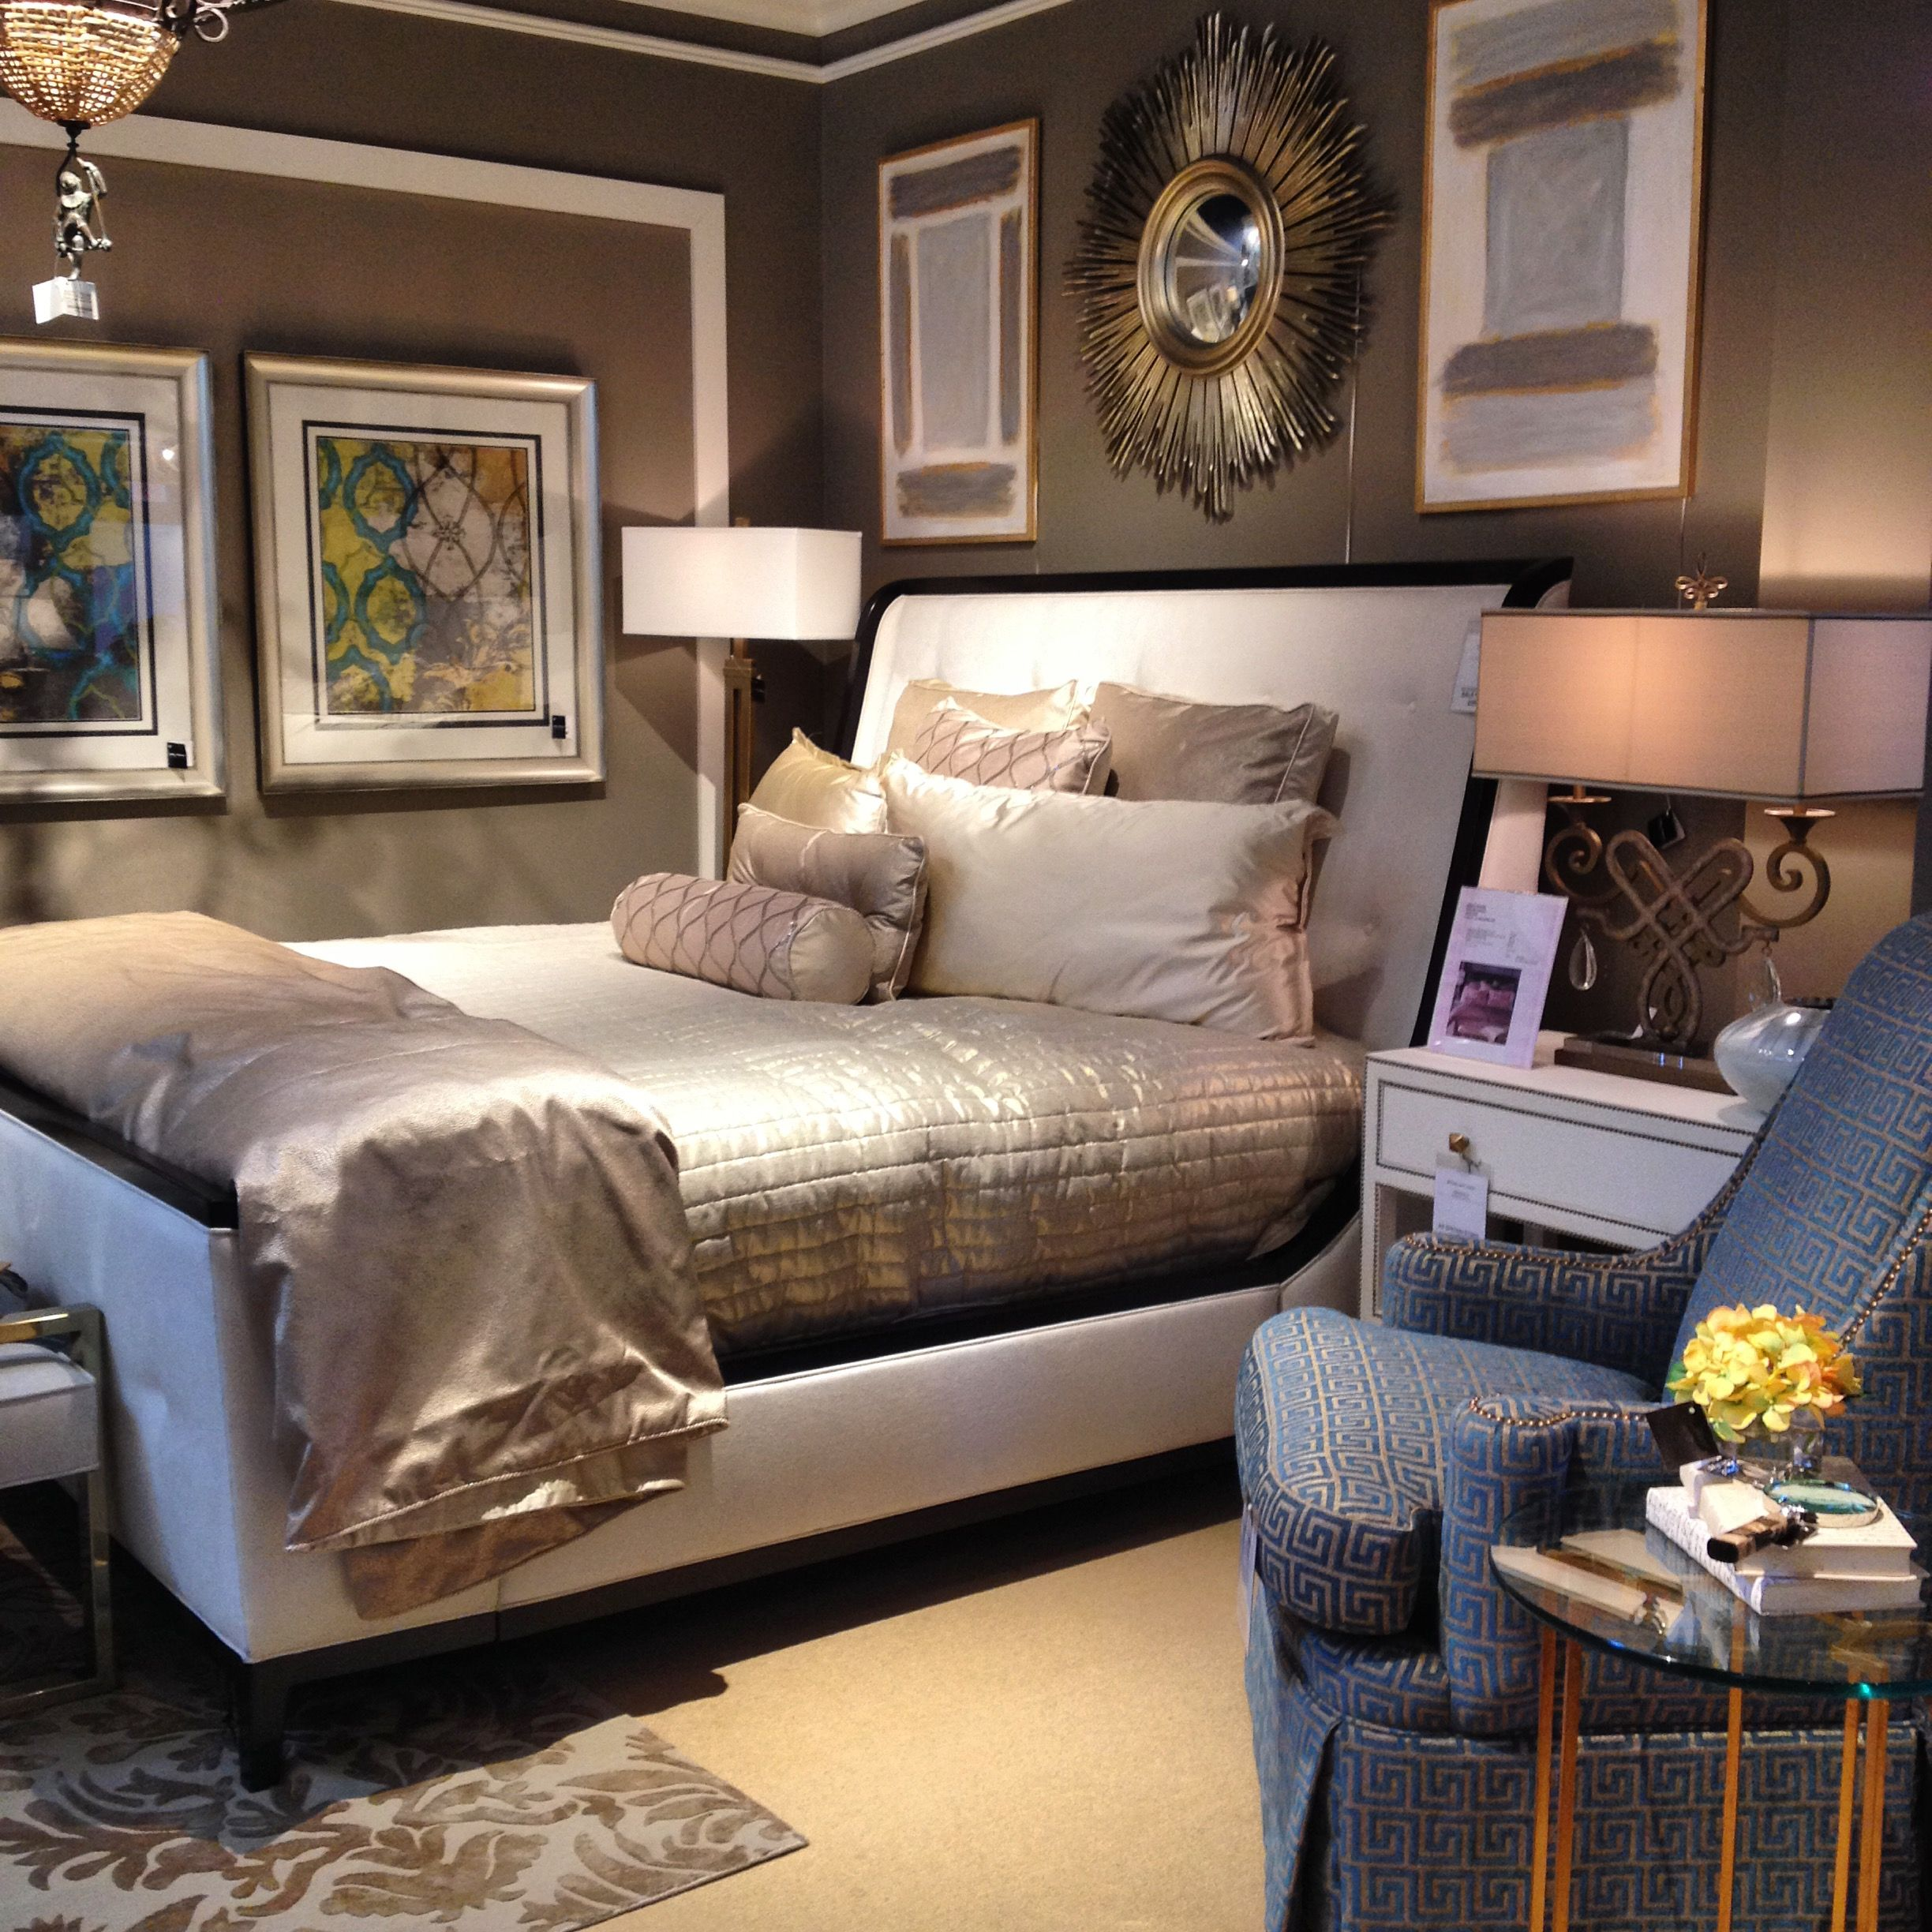 Hanging artwork above your bed can make the headboard feel